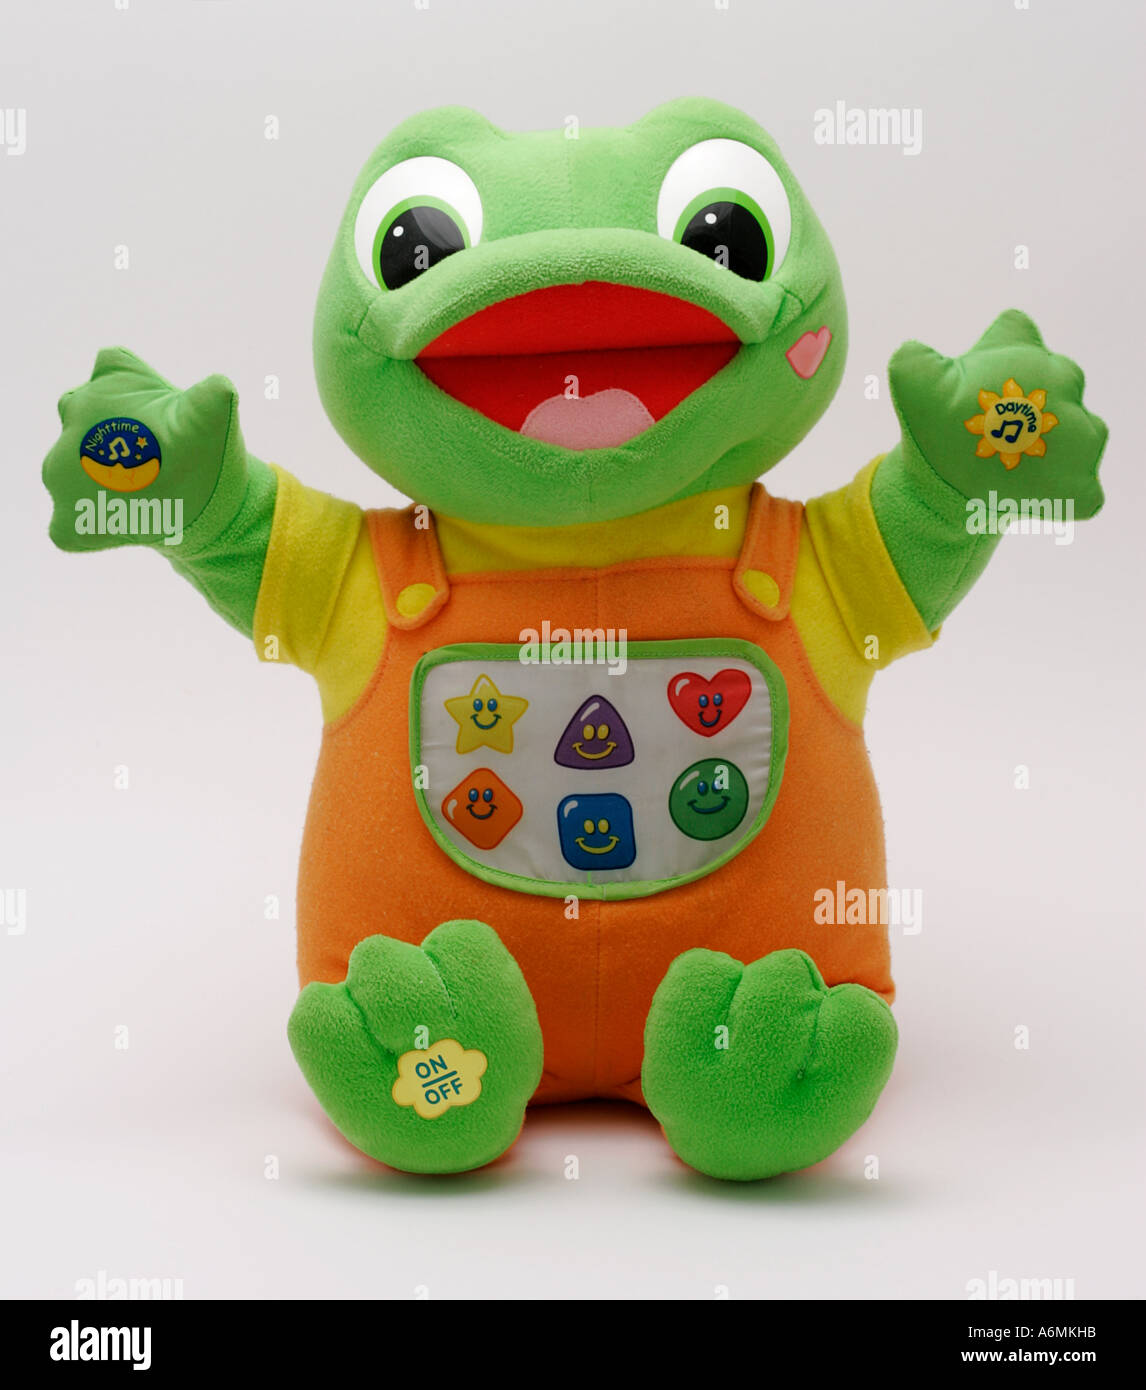 musical soft toy green frog stuffed front smiling face kiss